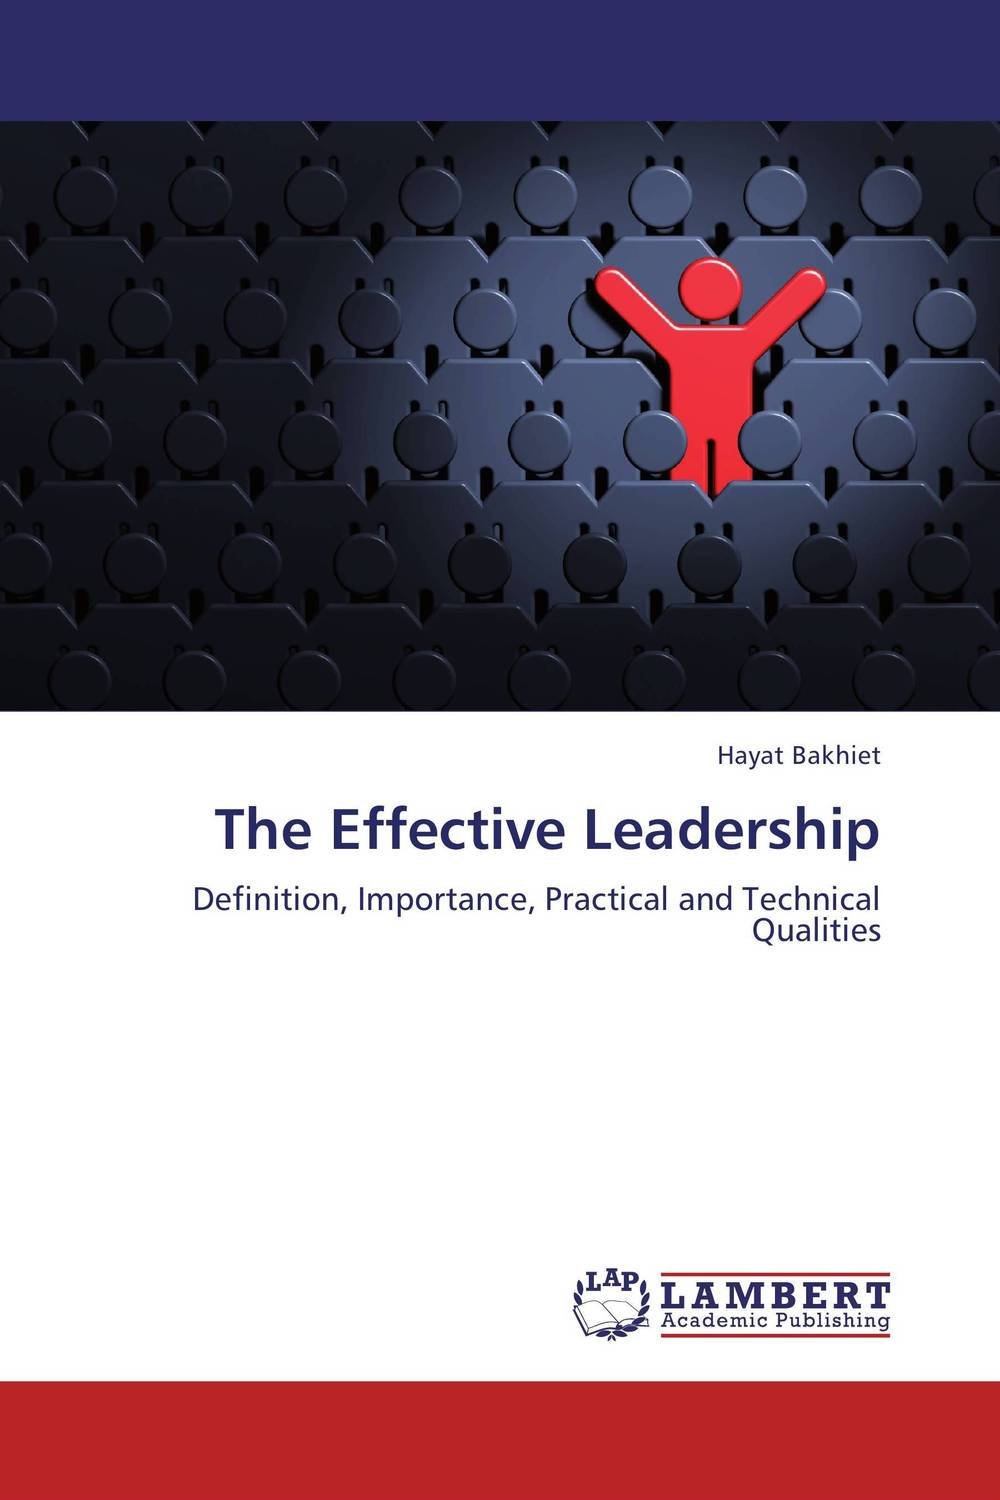 The Effective Leadership teachers as team leaders in a professional learning community